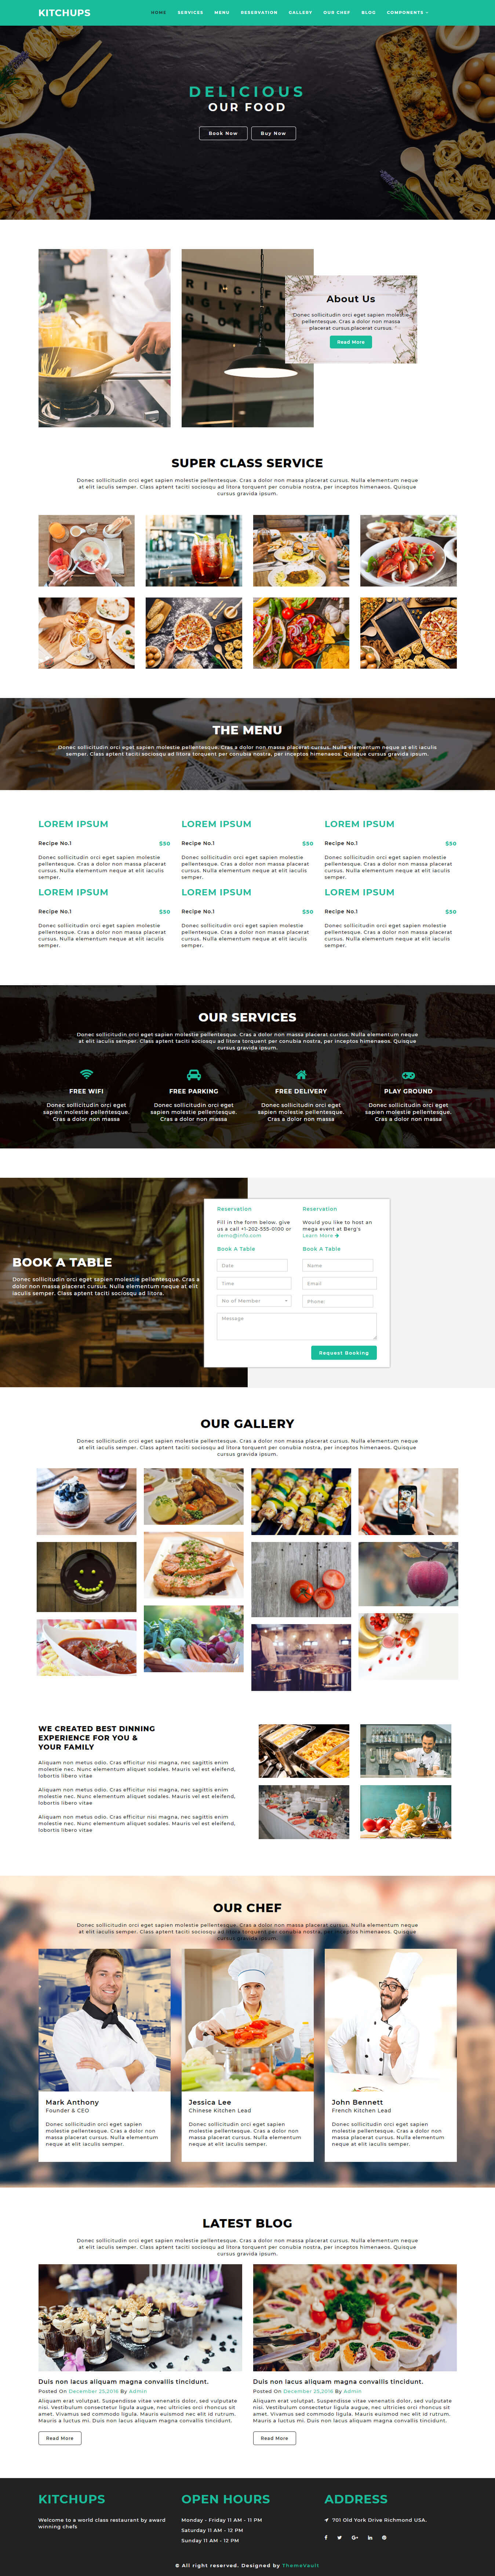 Kitchups –  Responsive Free Restaurant Website Templates HTML5